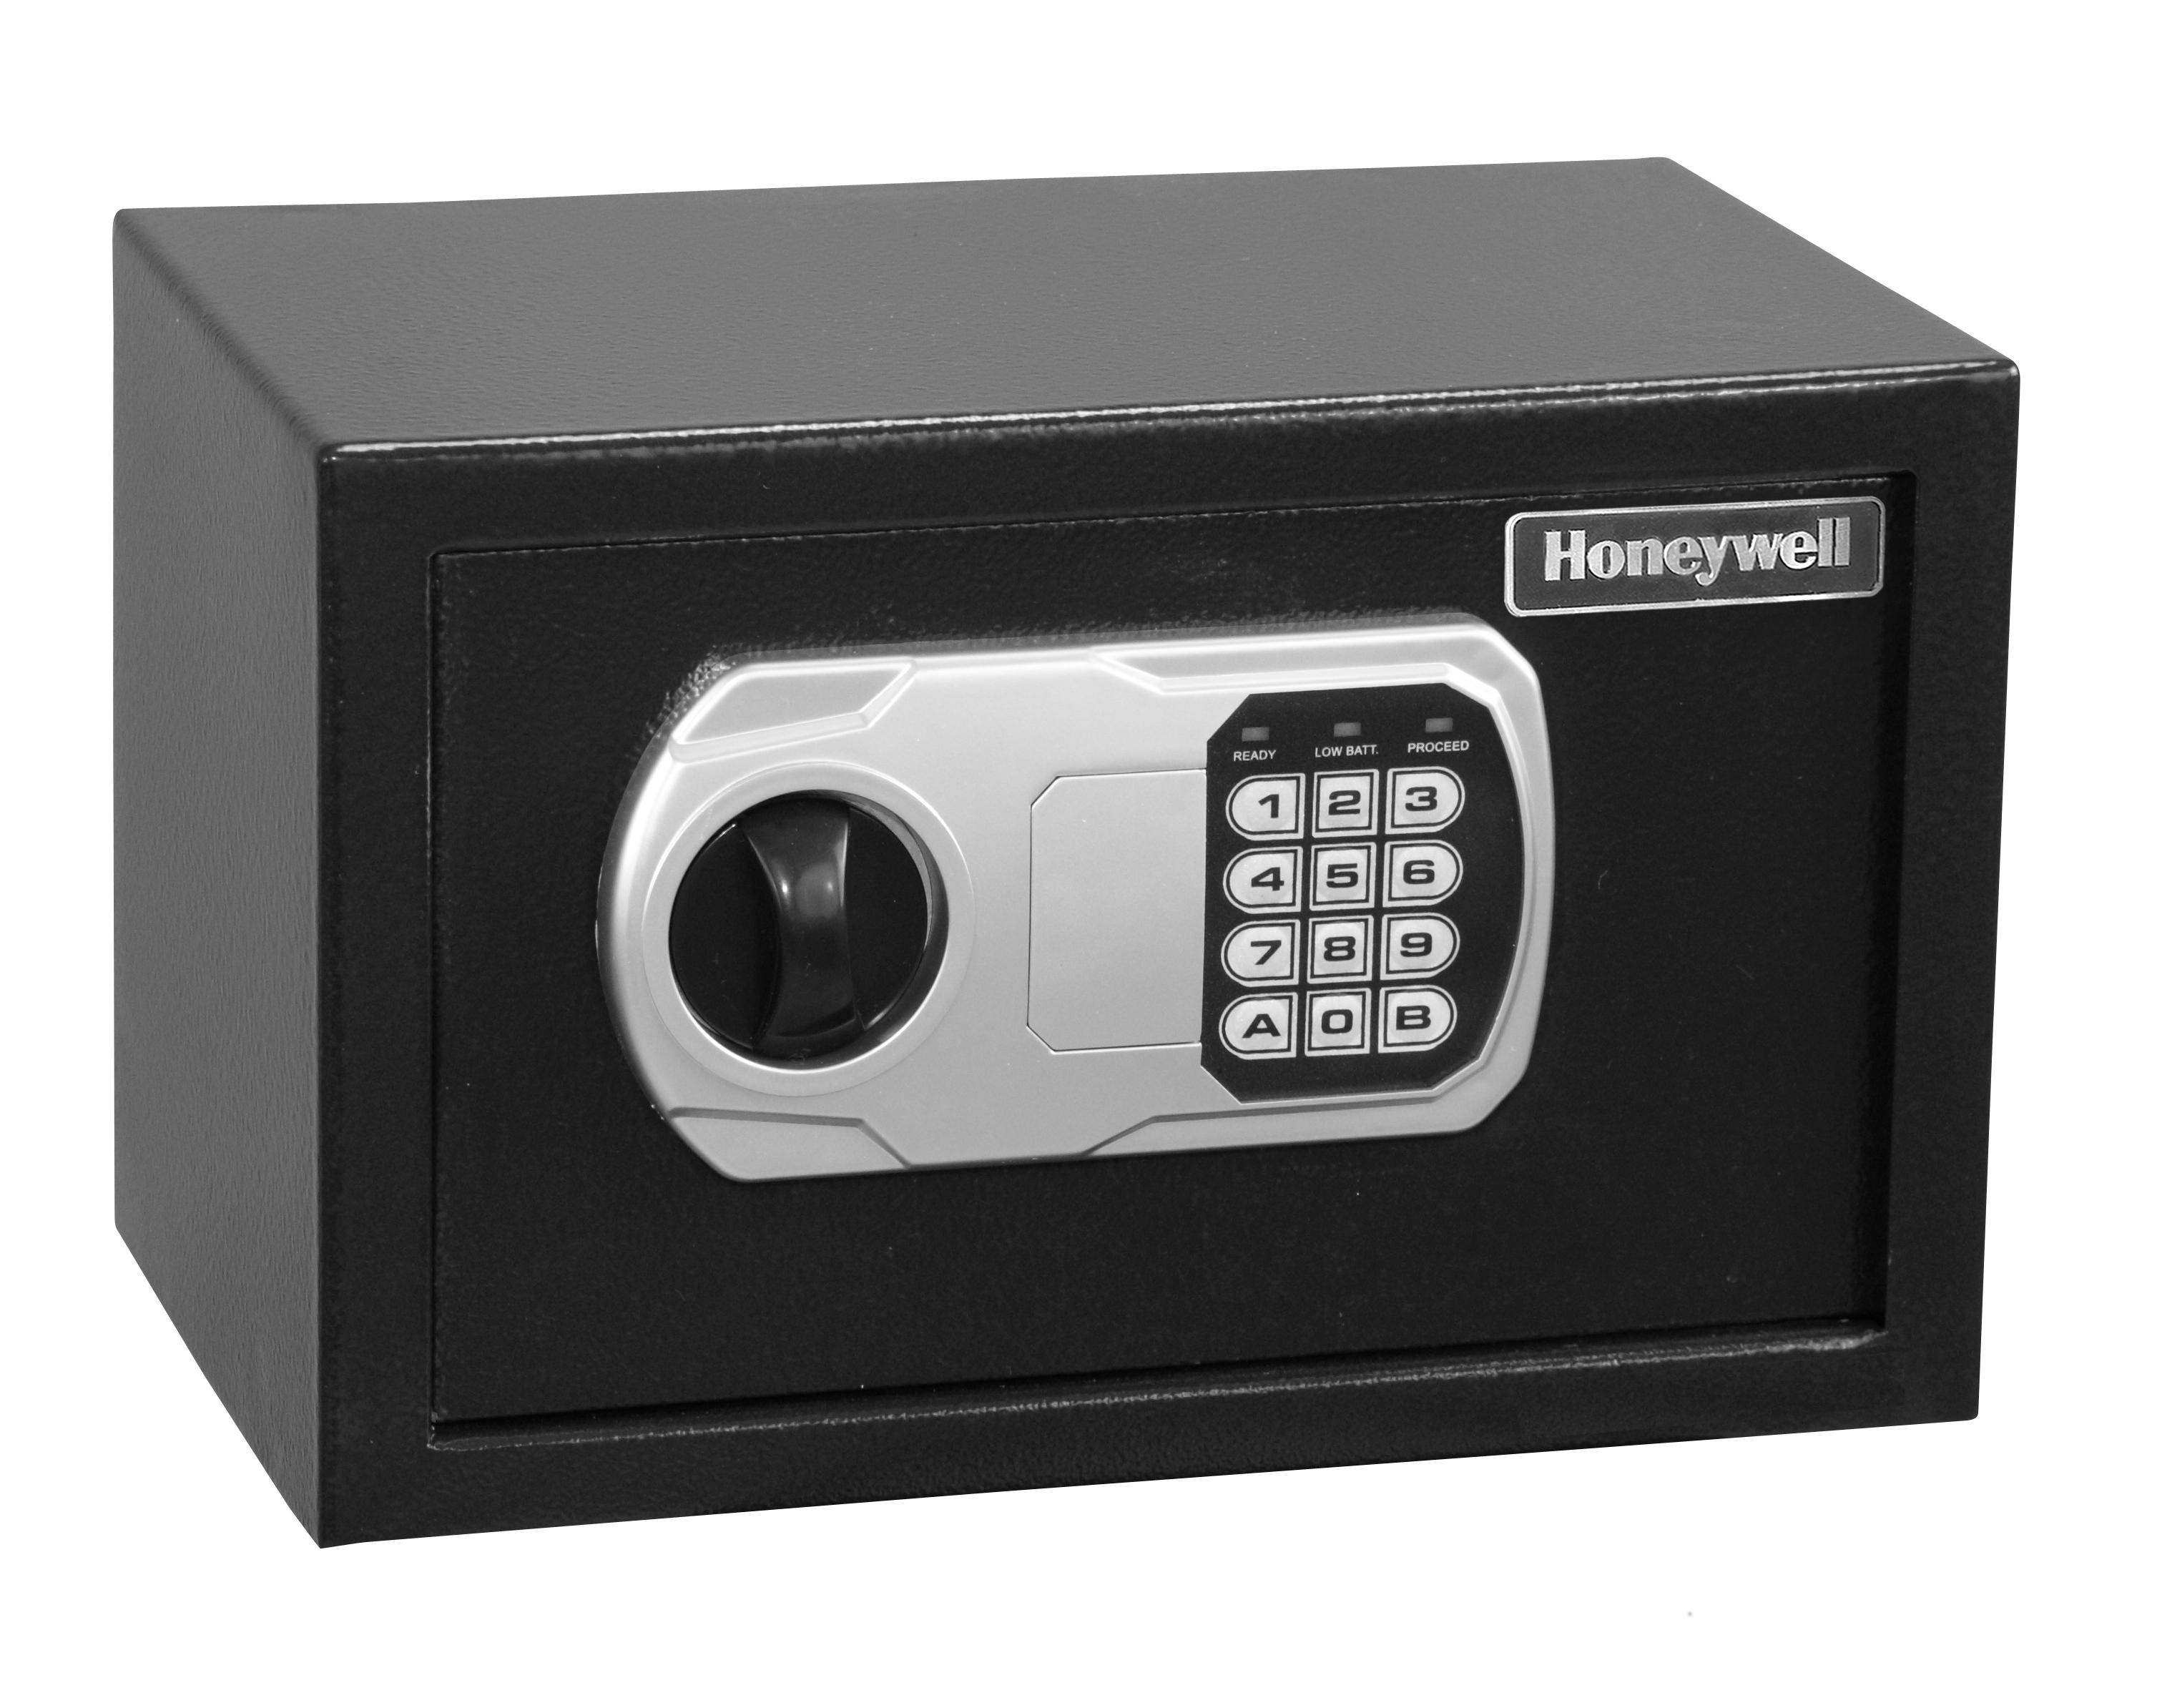 Amazon Honeywell 5101doj Approved Small Security Safe With